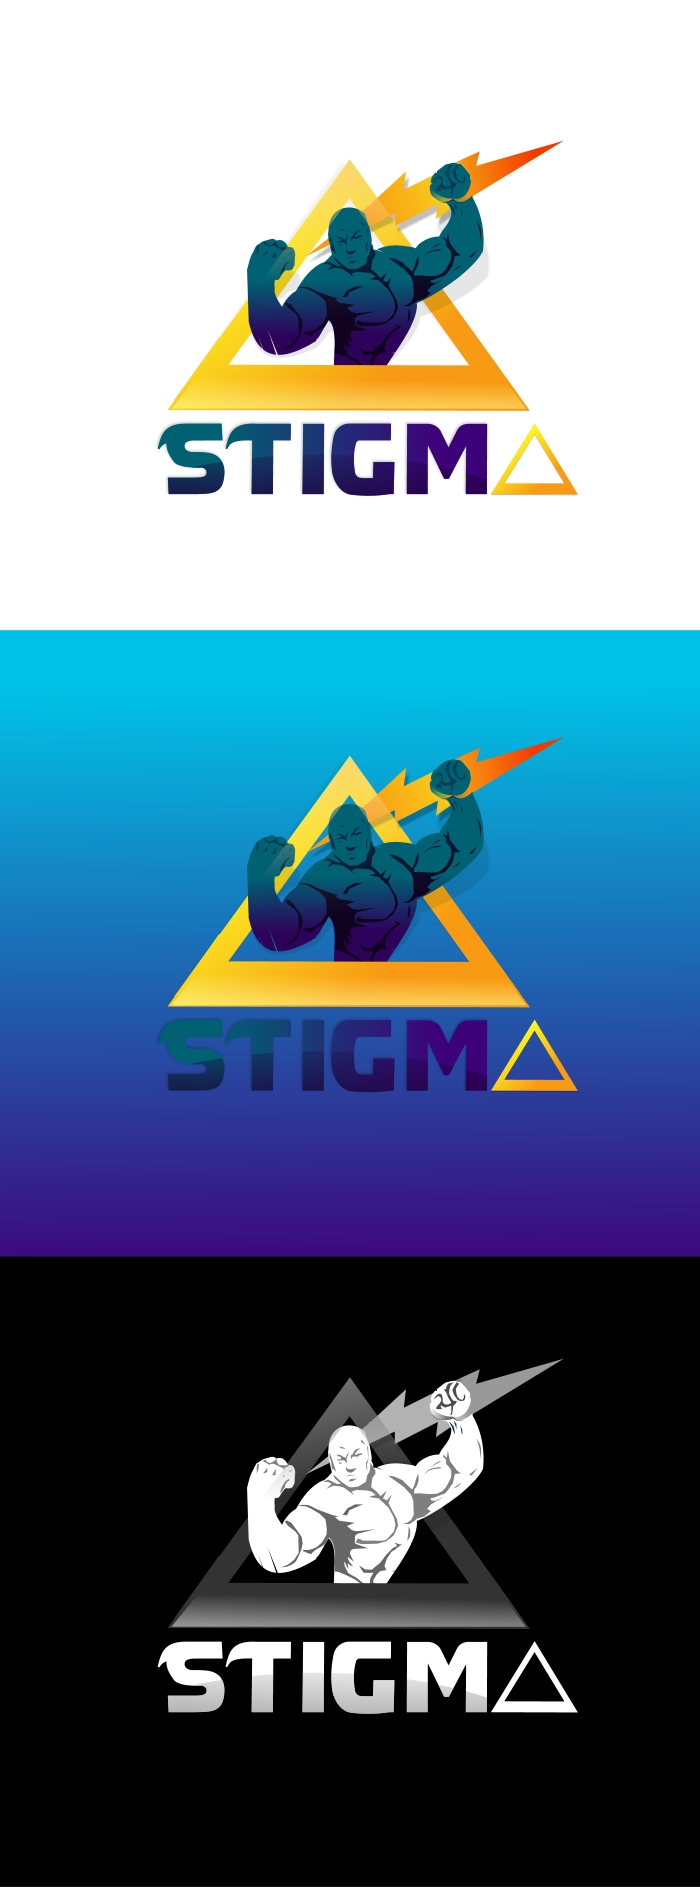 Logo Design by Private User - Entry No. 23 in the Logo Design Contest Creative Logo Design for STIGMA.